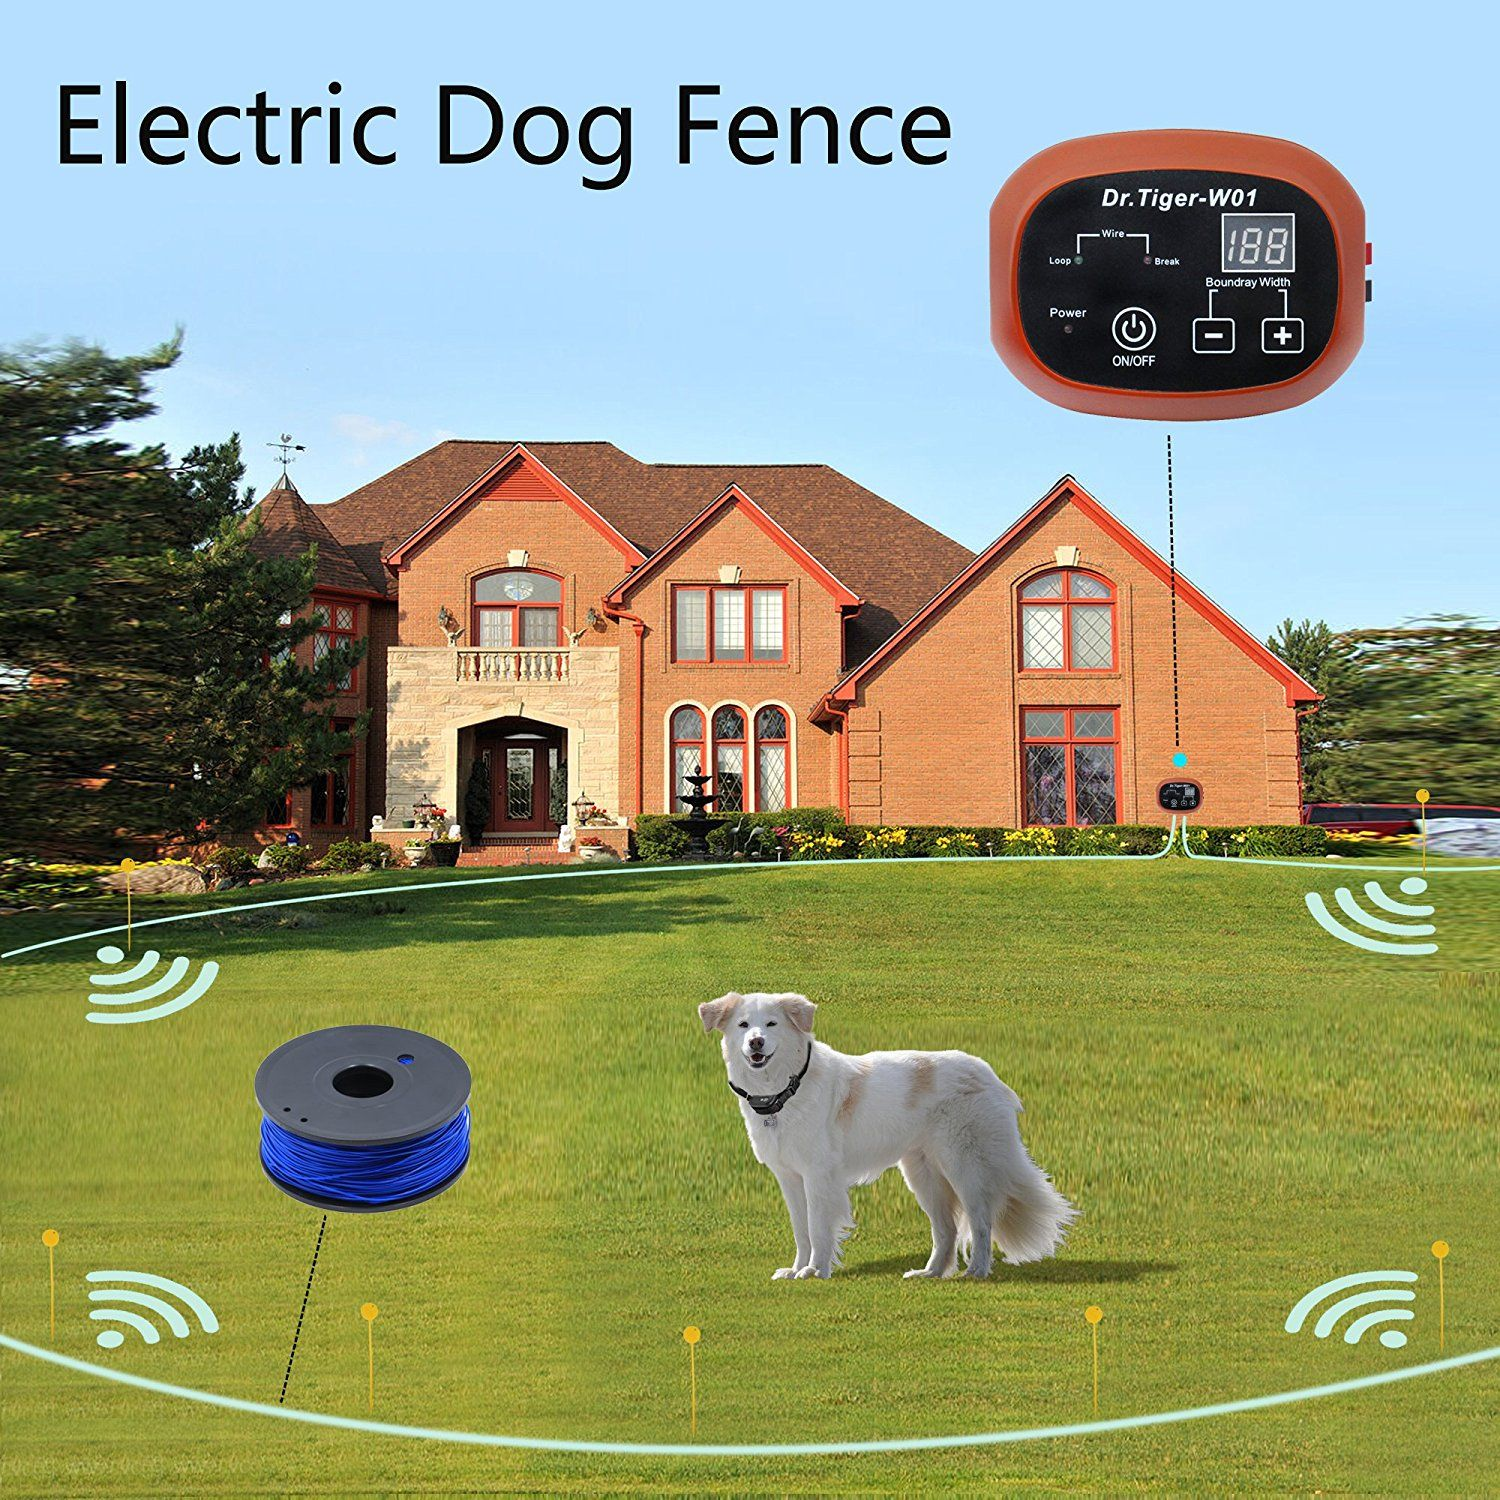 2 Dog Electric Fence System Inground DIY Containment with